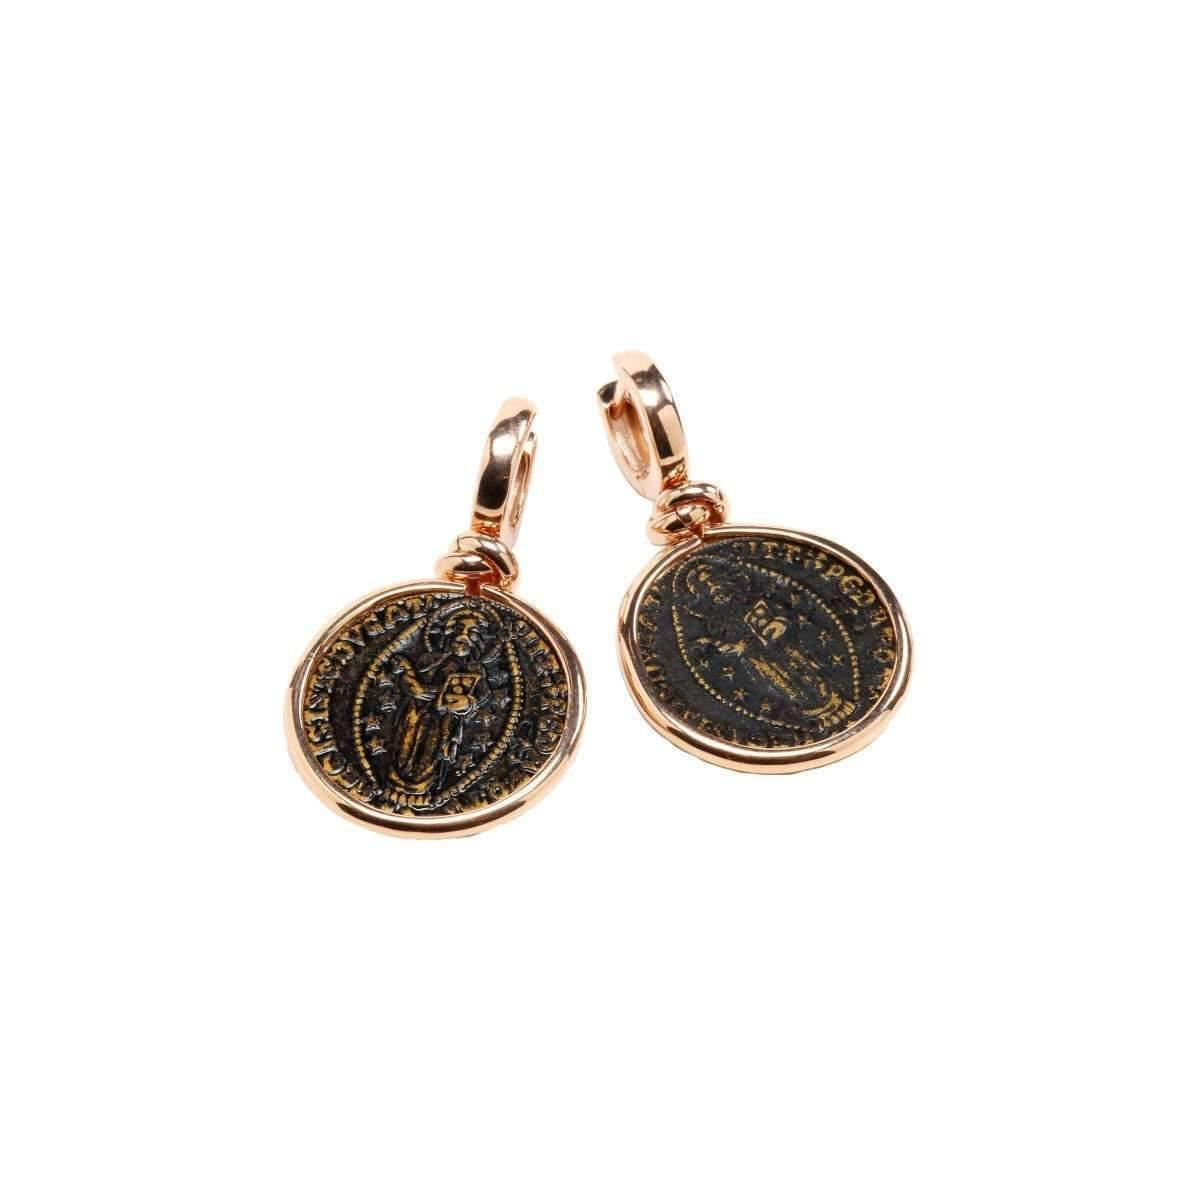 Rina Limor Sunrise Coin earrings (Small)